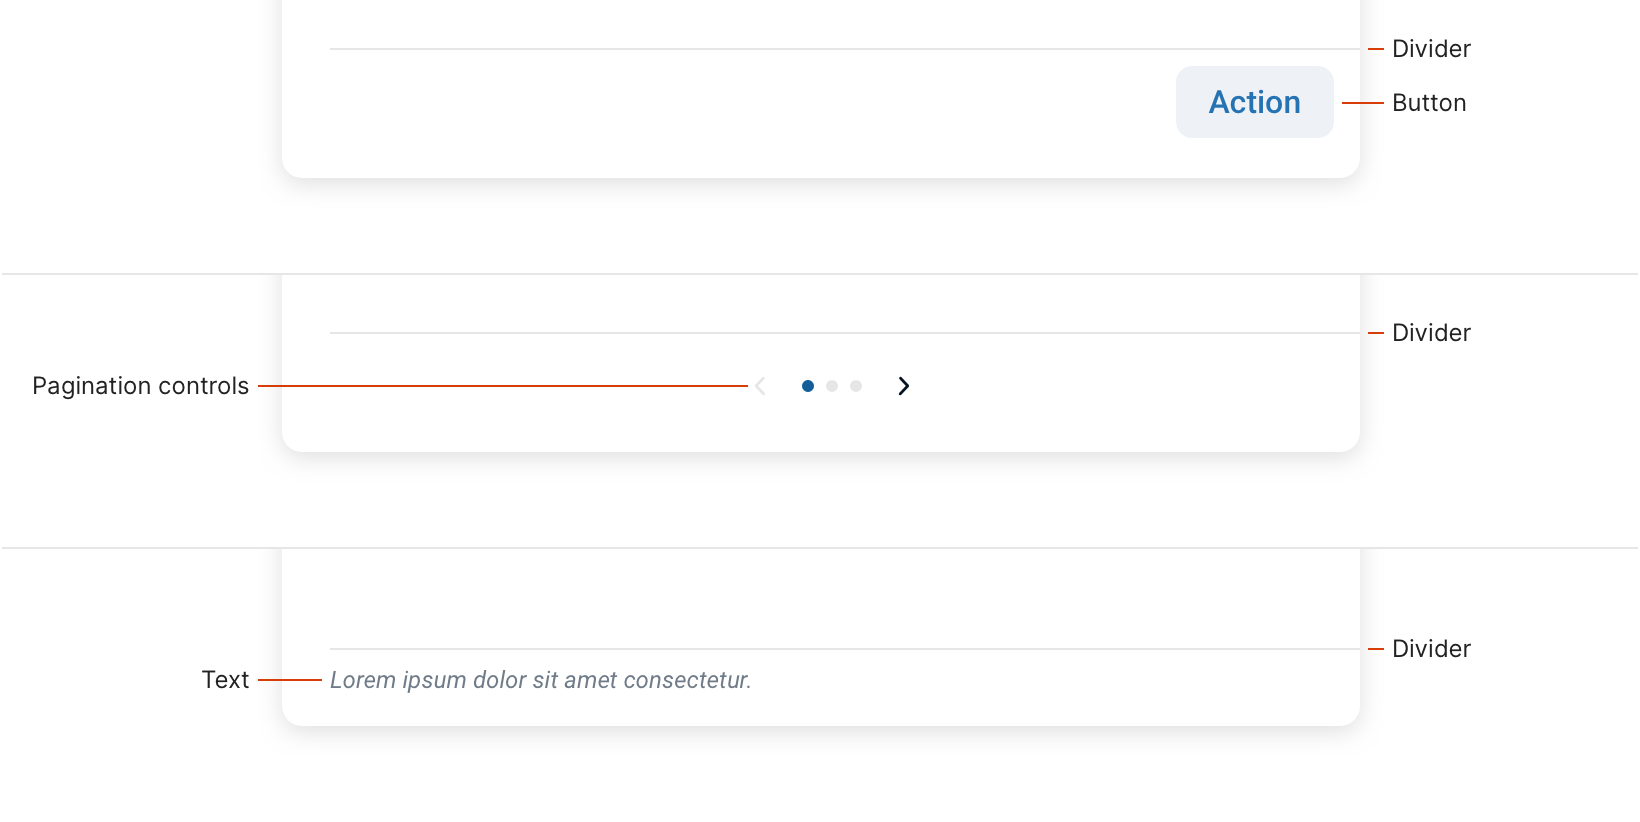 A diagram of sample footer layouts that include elements such as actions, pagination controls, and text.